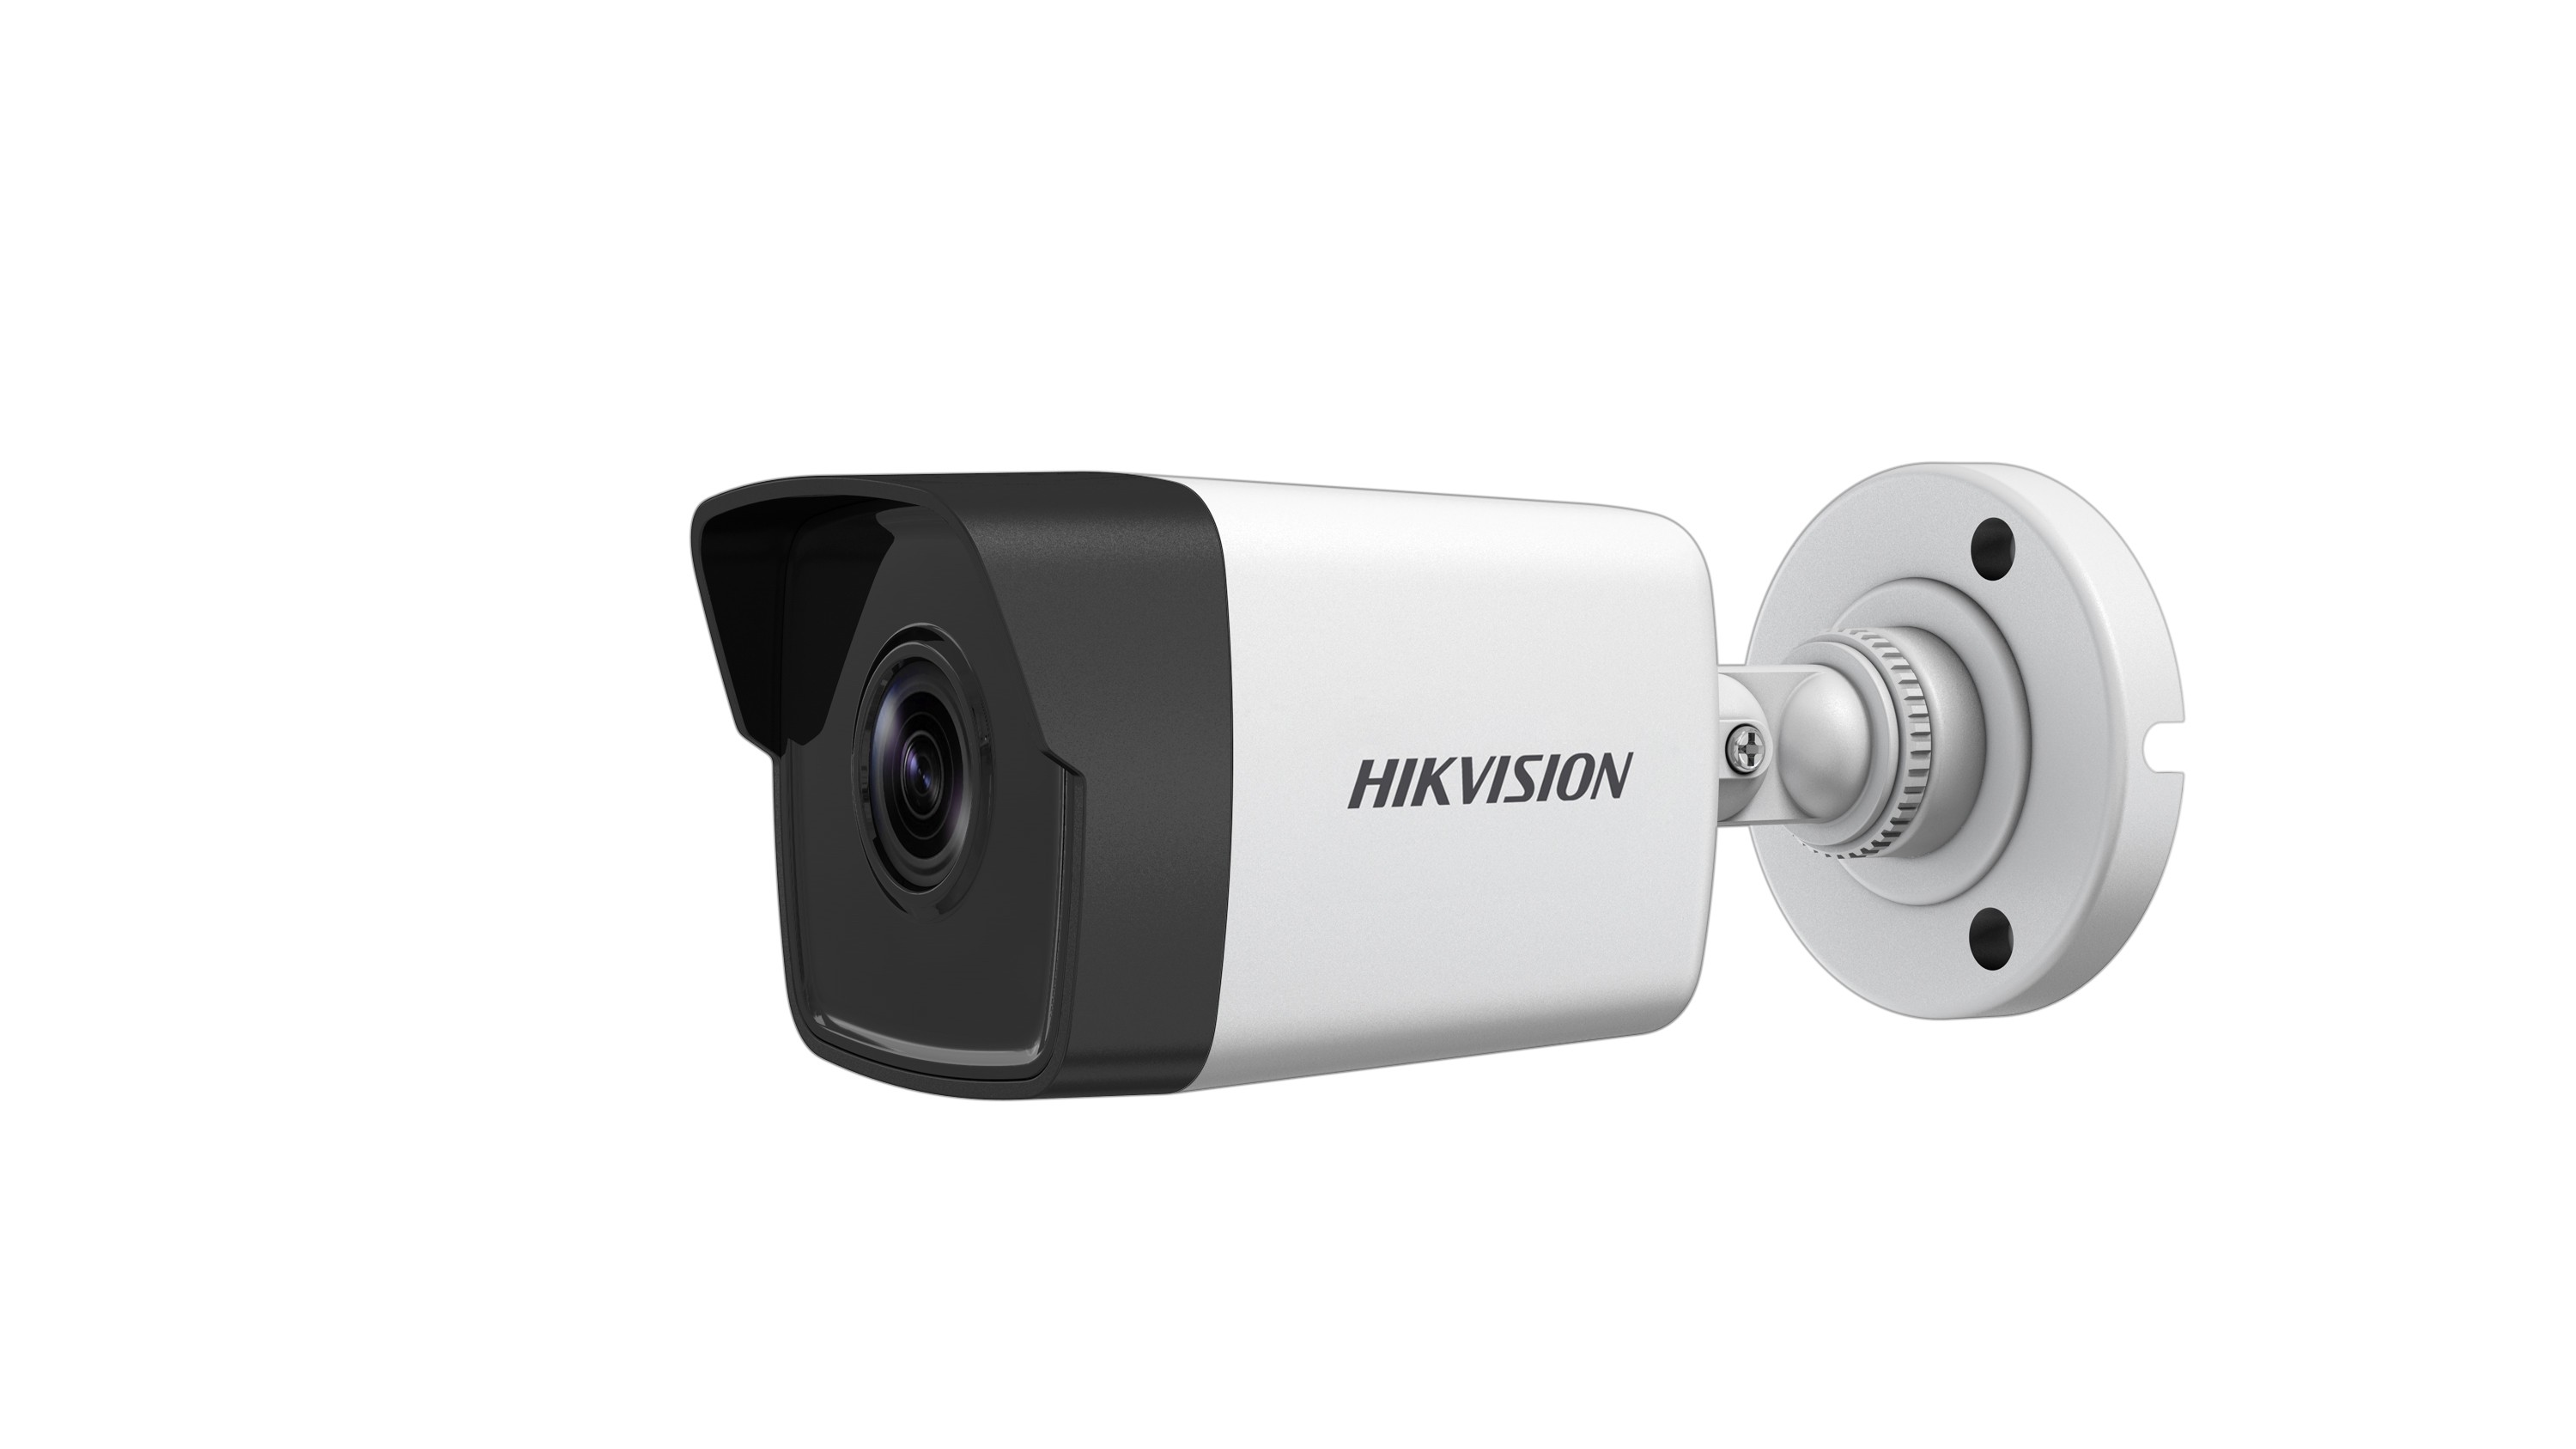 Hikvision DS-2CD1023G0-I 2.8mm